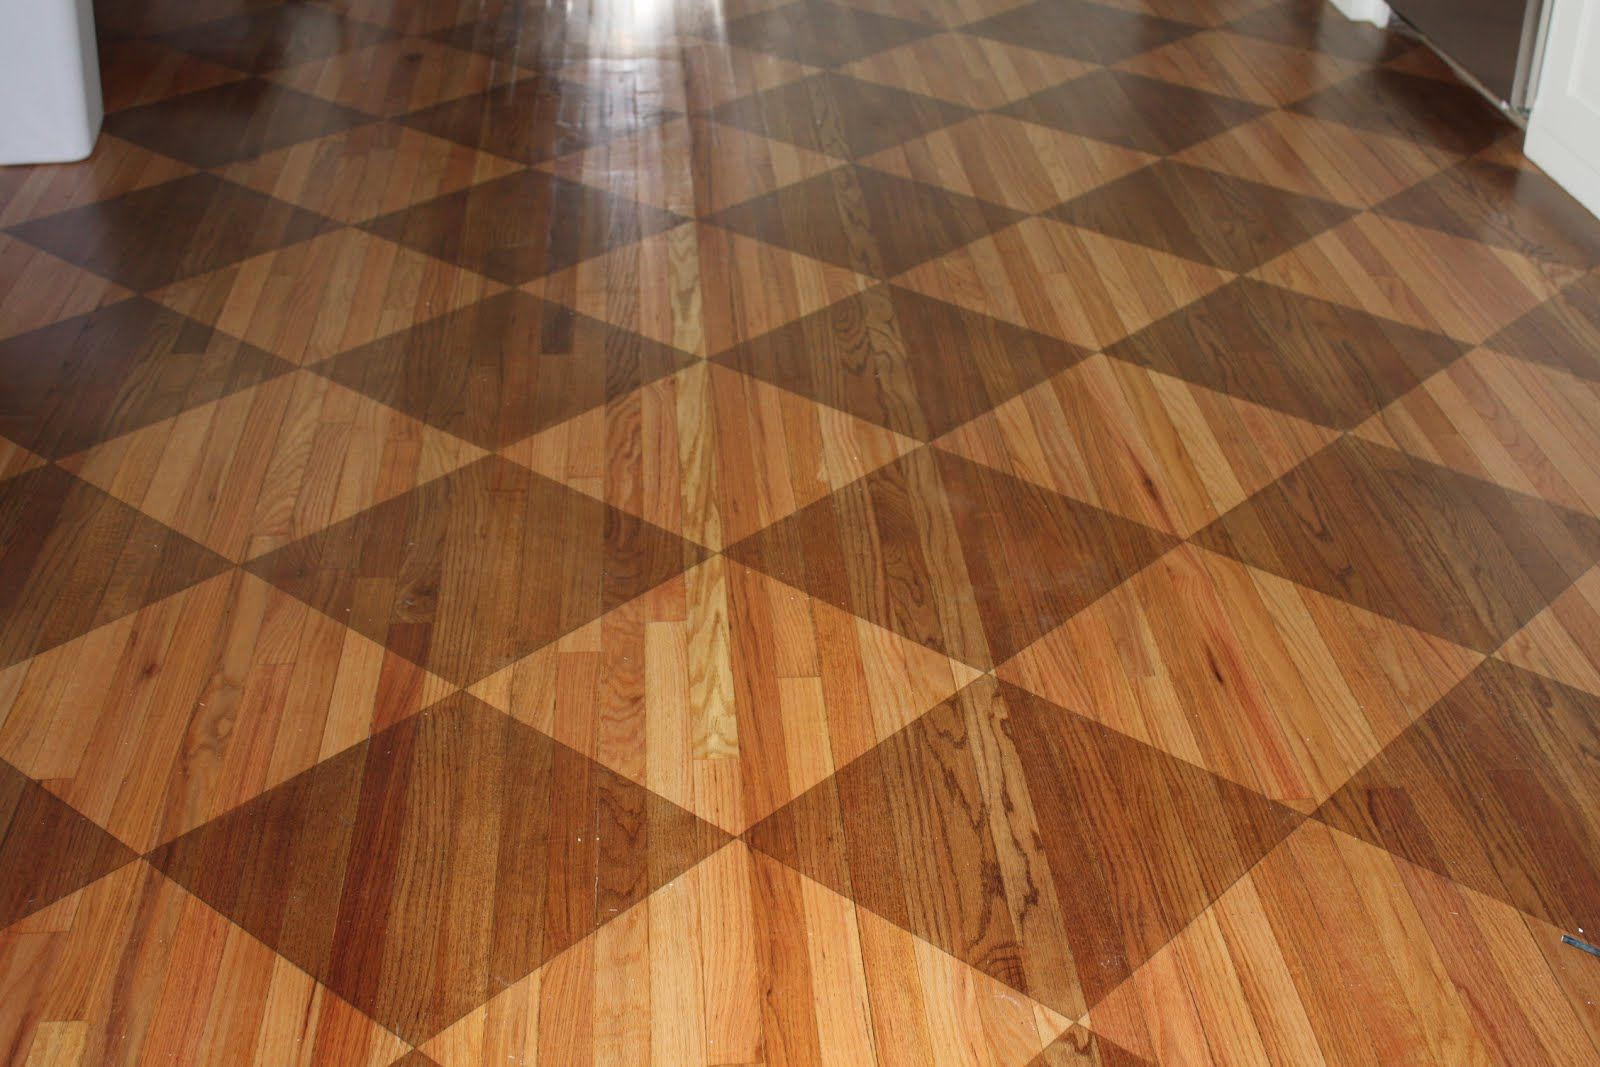 Checkerboard Stained Wood Floor In Kitchens Flooring